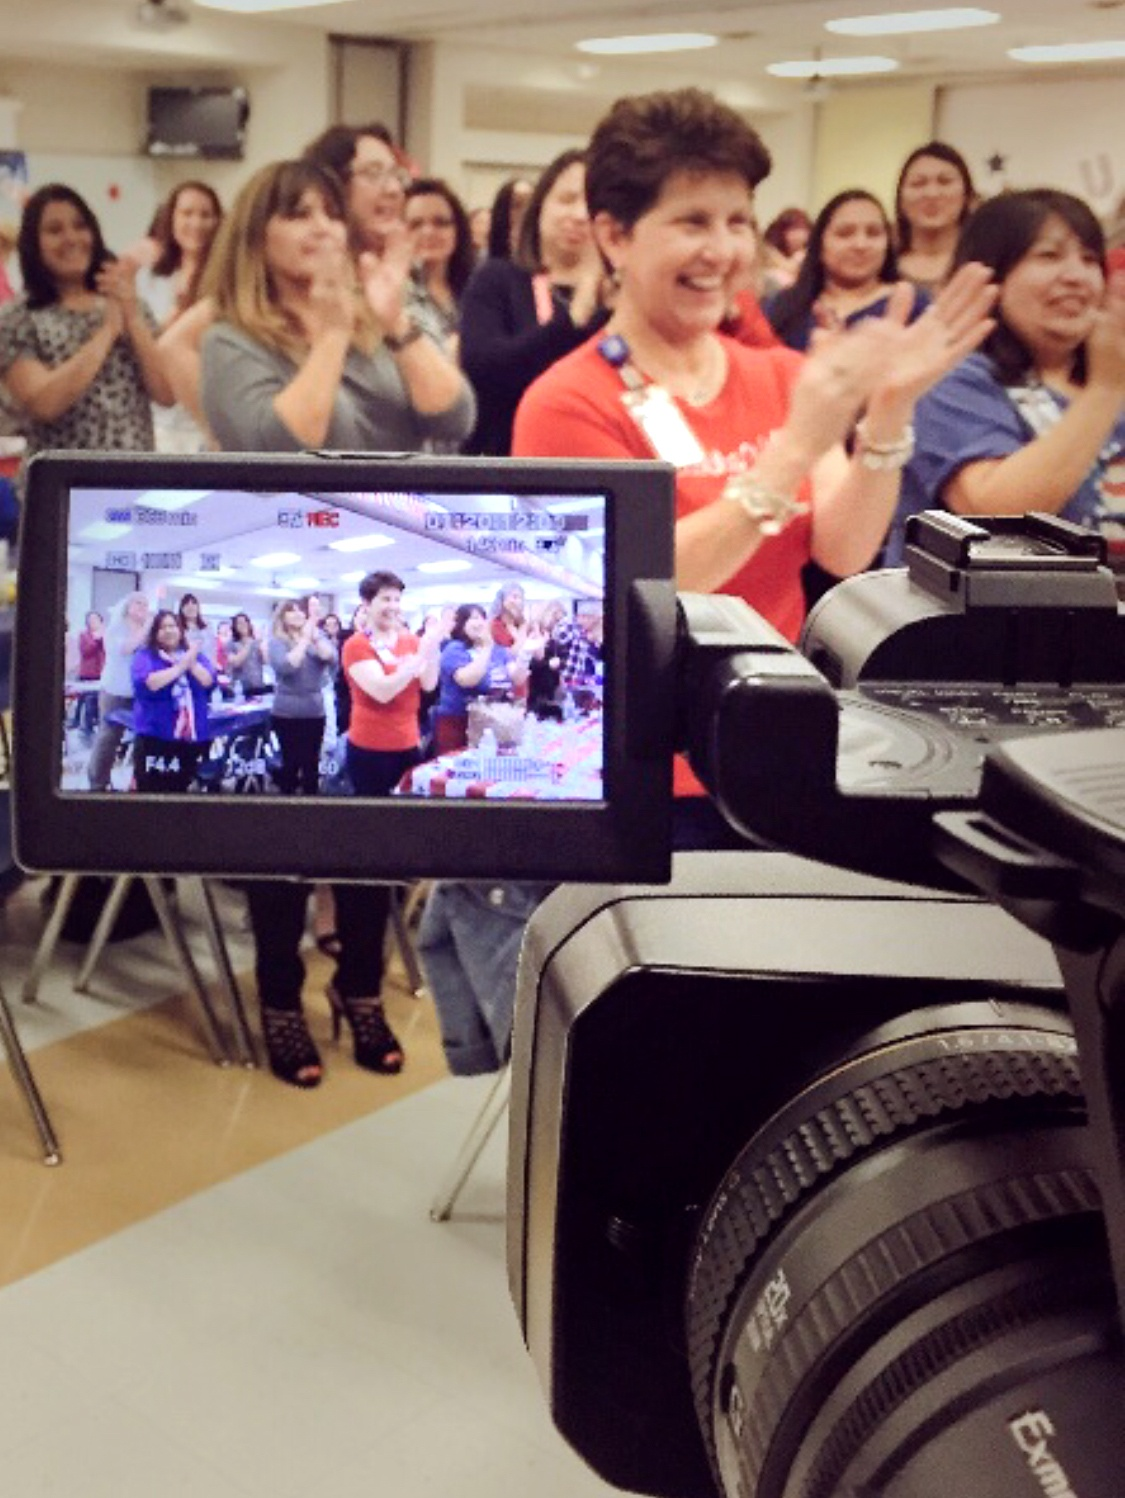 Large female audience standing and clapping with camera in foreground